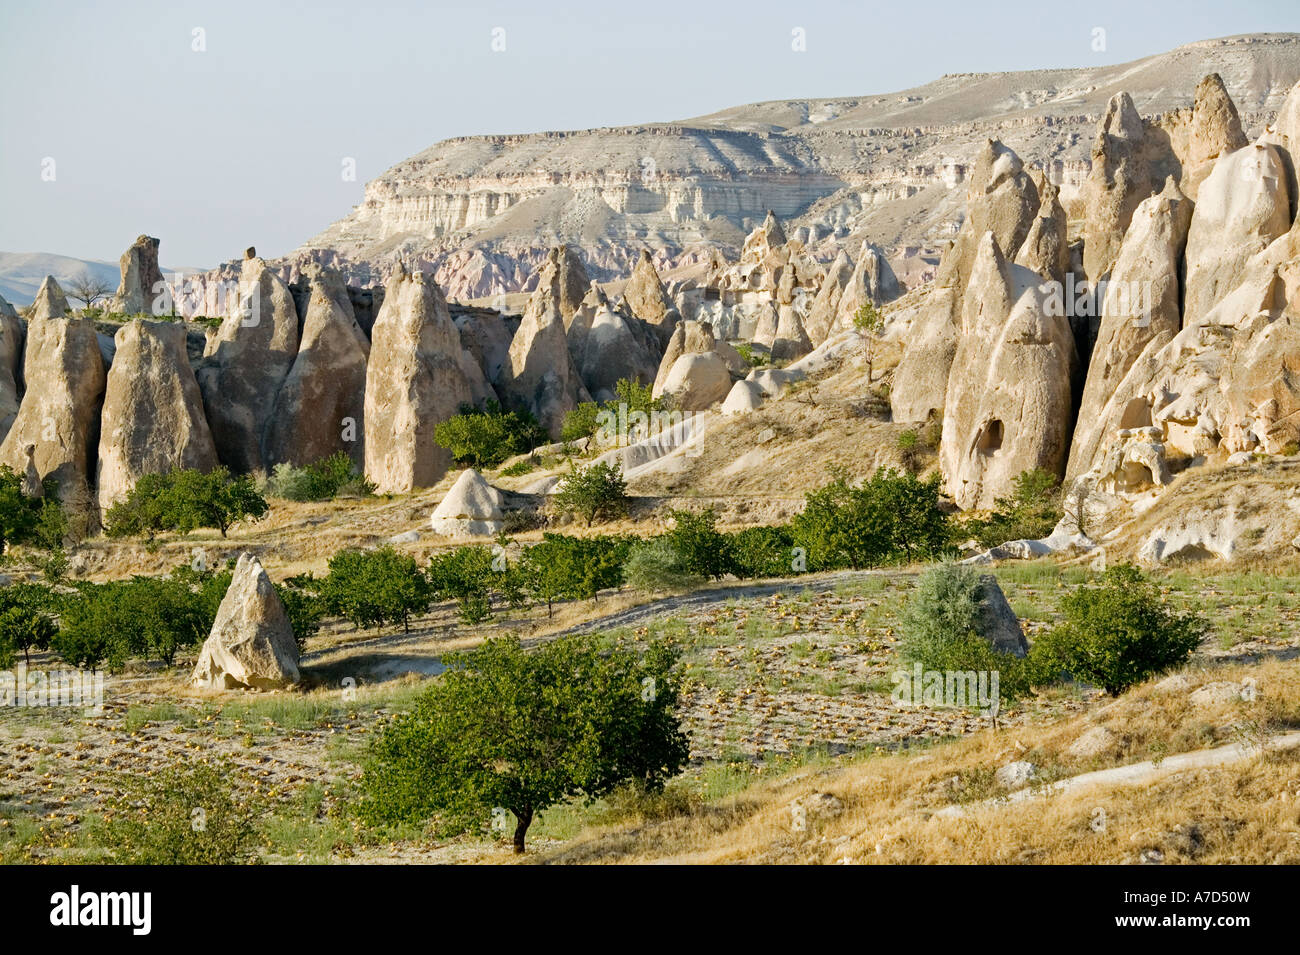 Curious columnar rock formations with cave houses in Cappadocia nar Goreme - Stock Image